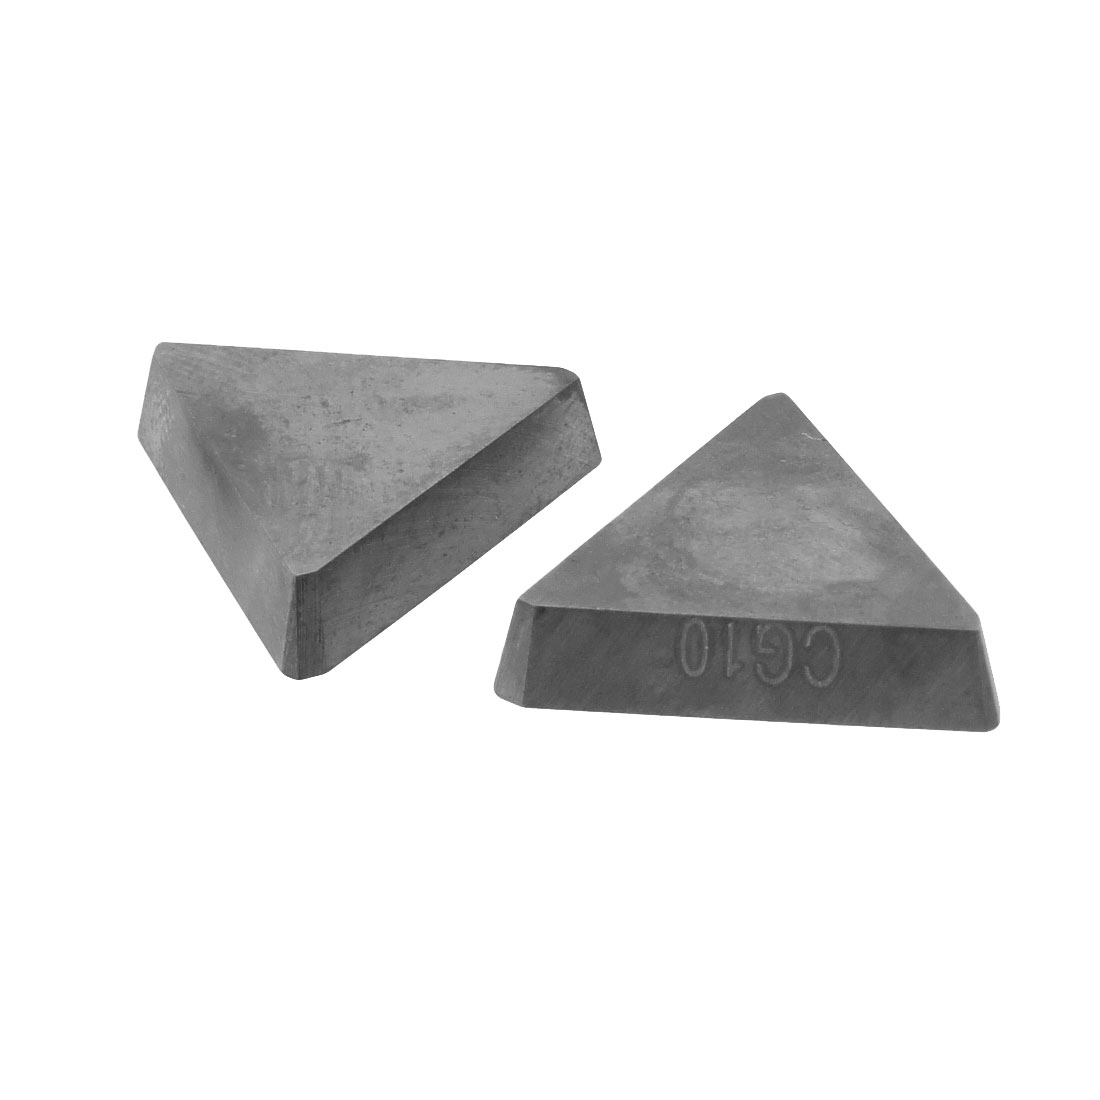 2 Pcs Welding Blade Tungsten Cemented Carbide Inserts for Turning-lathe